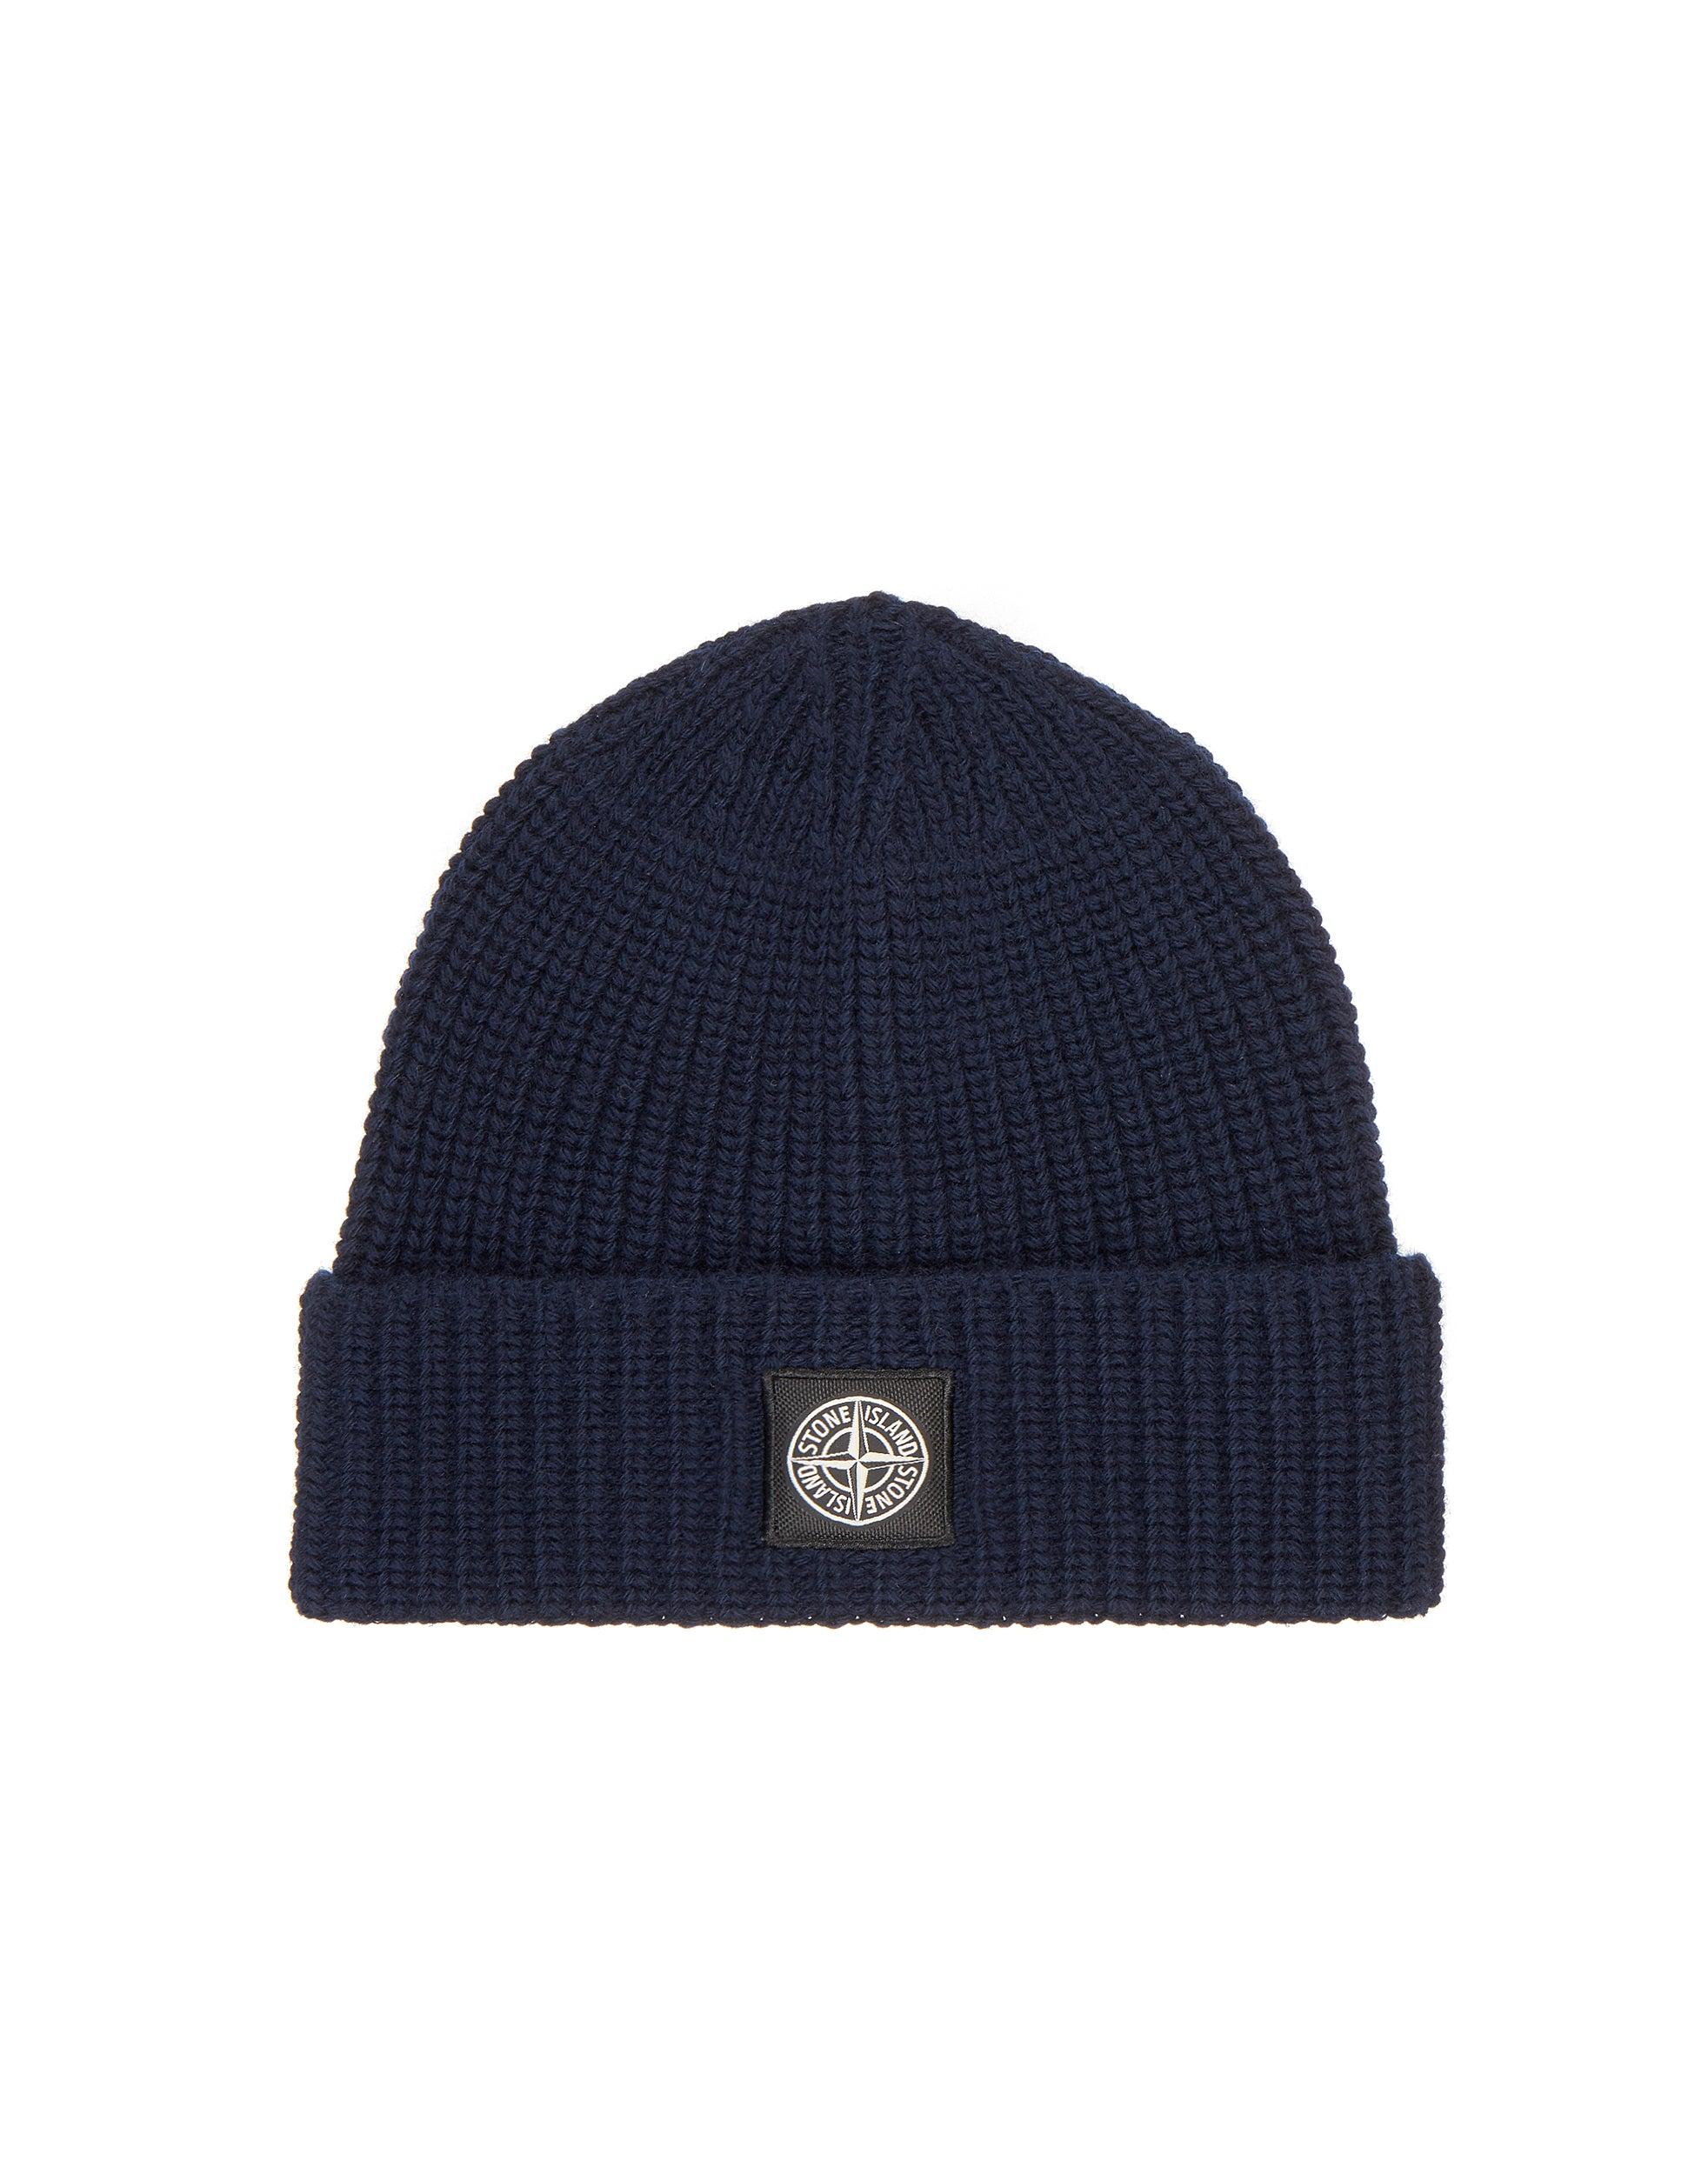 N10B5 Ribbed Wool Hat in Navy Blue